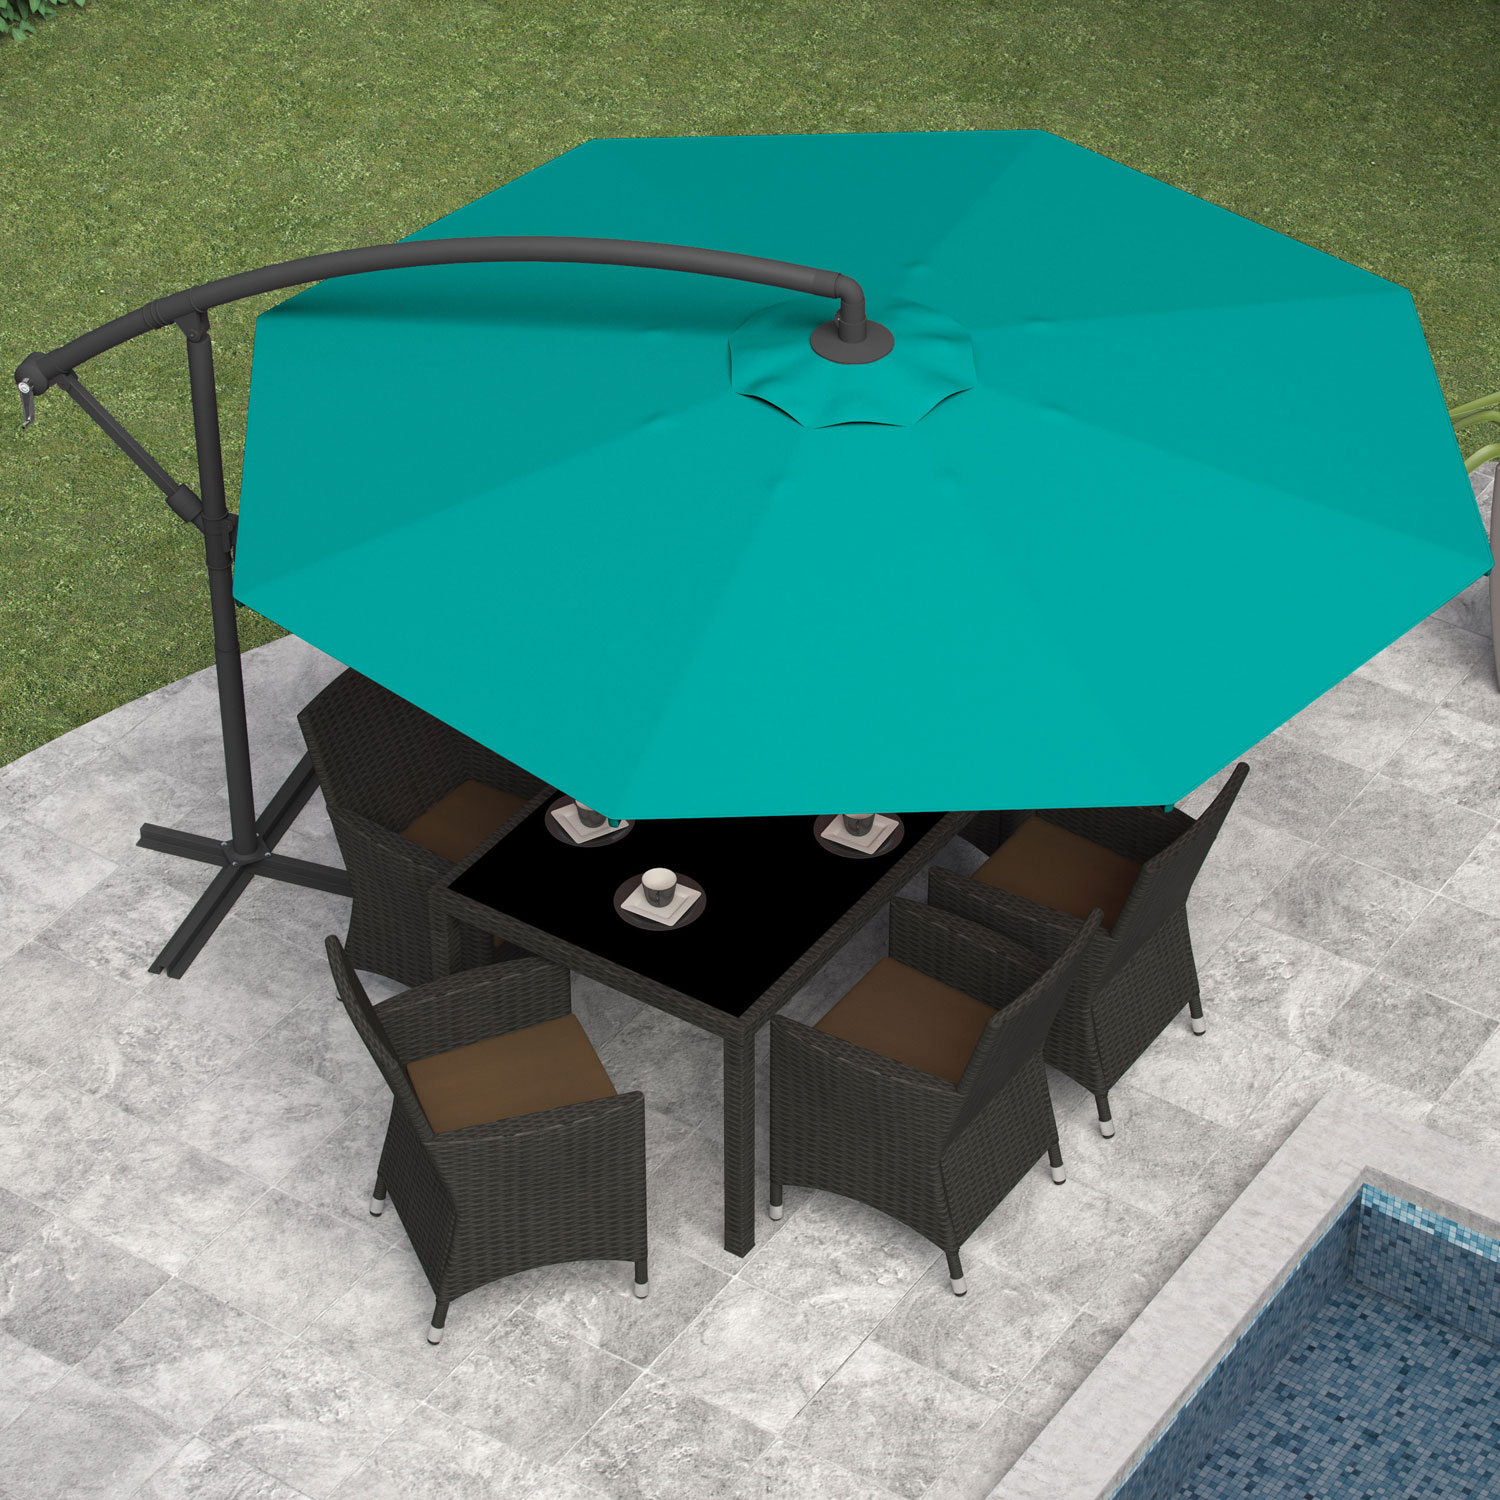 Corliving Collapsible 11 Ft Offset Patio Umbrella Turquoise Blue